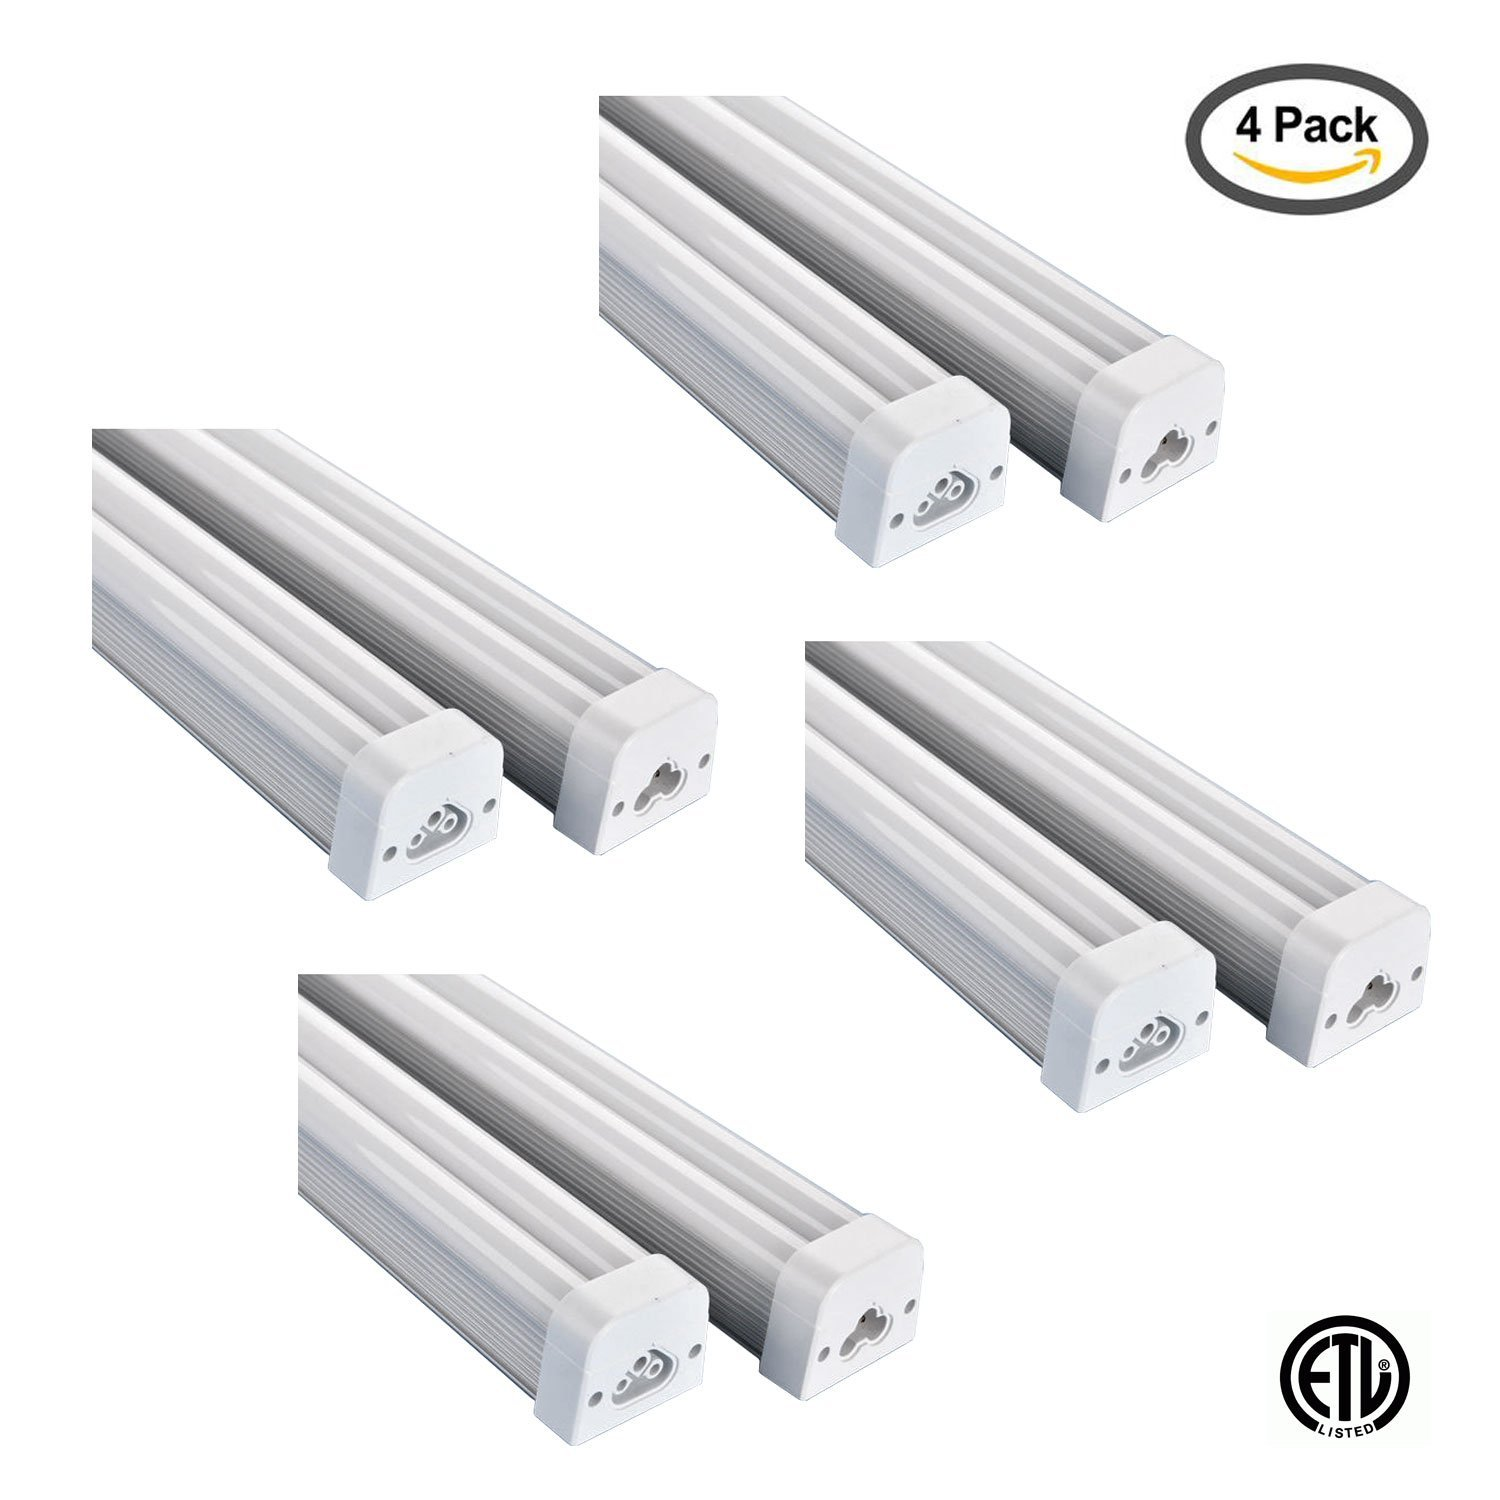 Light Blue™ LED T5 Integrated Double Tube Light, 30-Watt, 4Ft, 4000K Cool White, 2,700 Lumens, Frosted, Ceiling and Under Cabinet Light, LED Shop Light, (4-PACK) by Light Blue USA